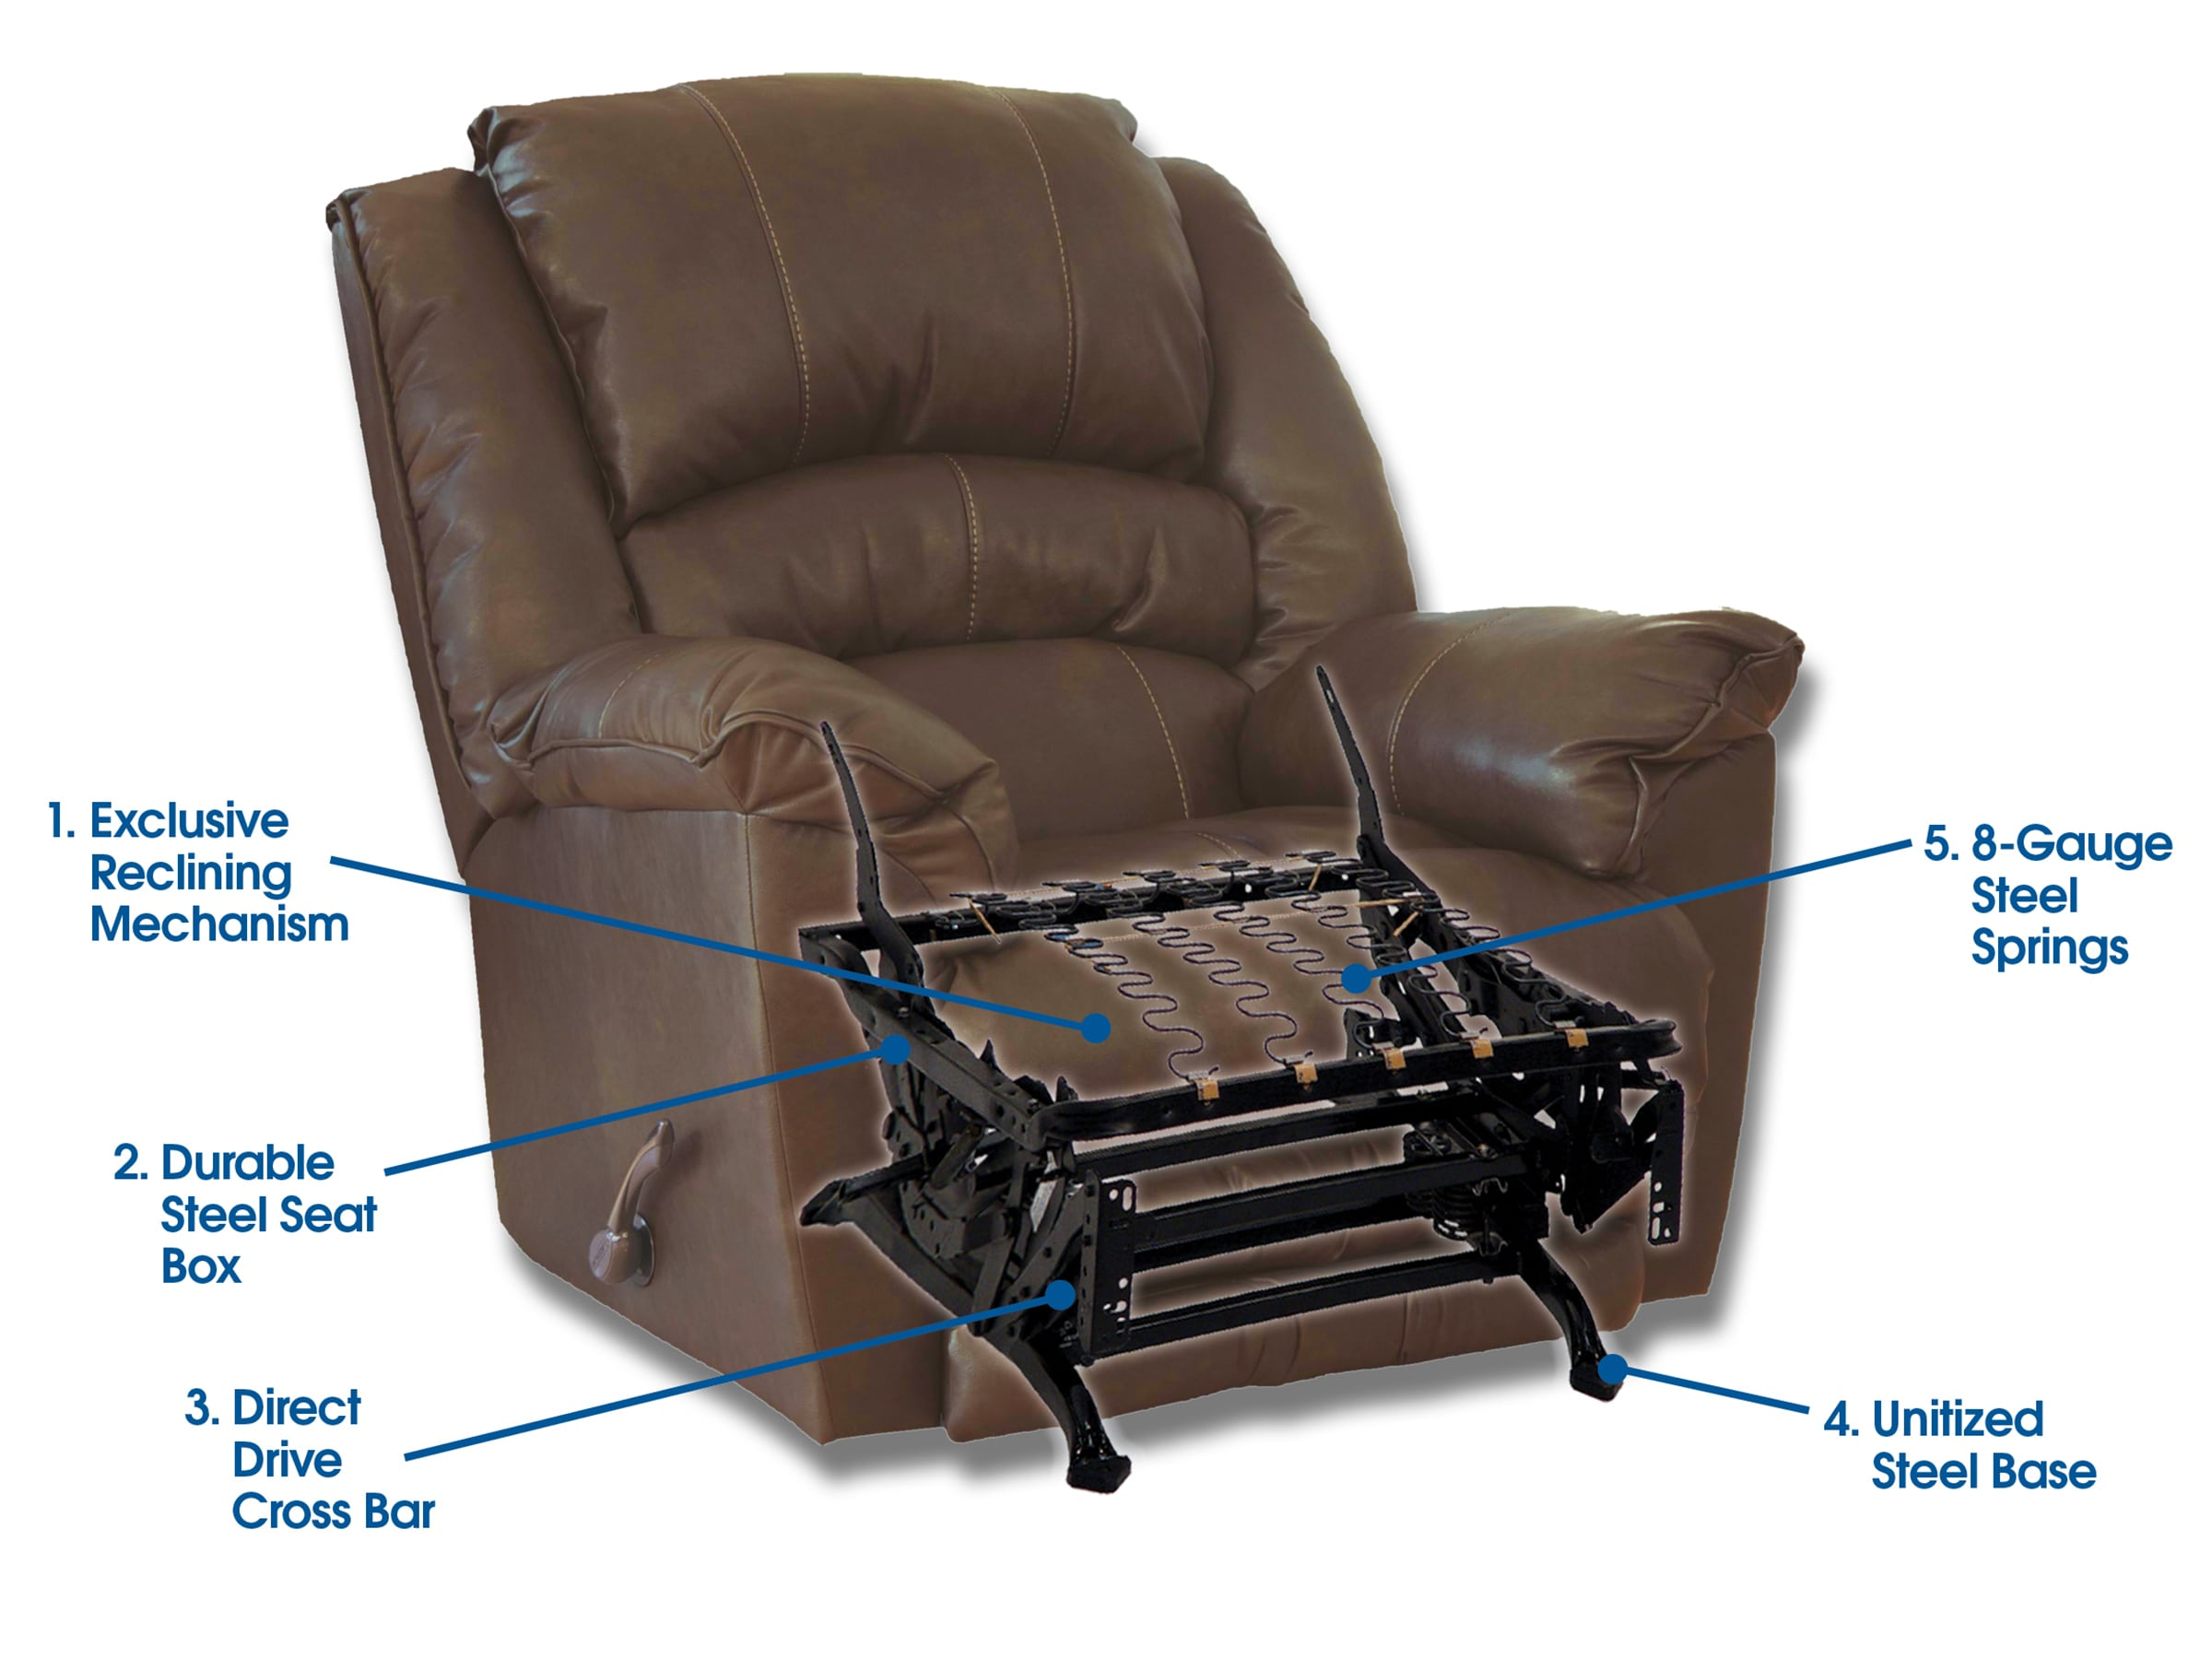 Parts of our recliners